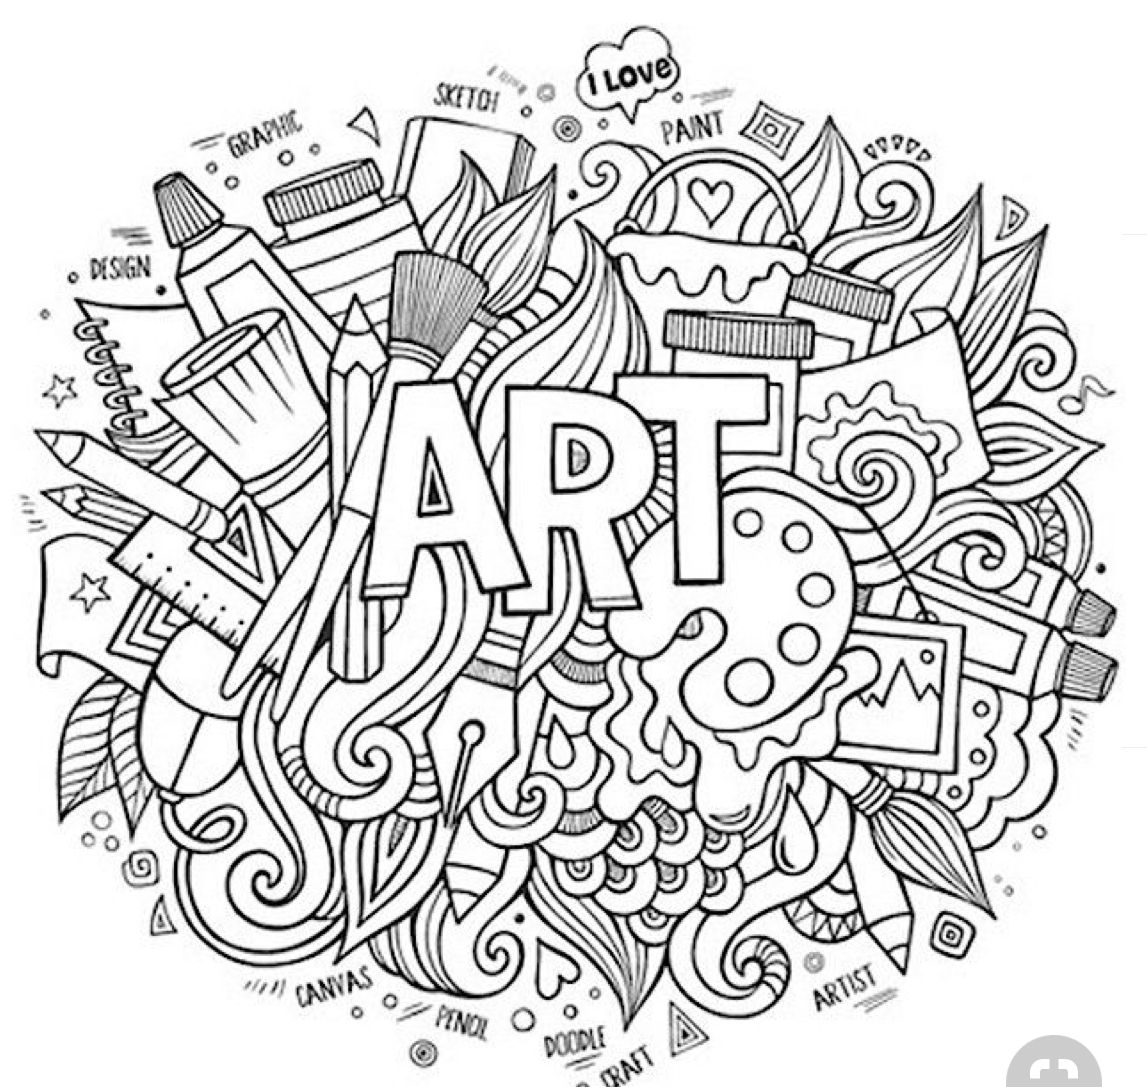 Pin By Kelly Sheler On Art Classroom Pinterest Coloring Pages